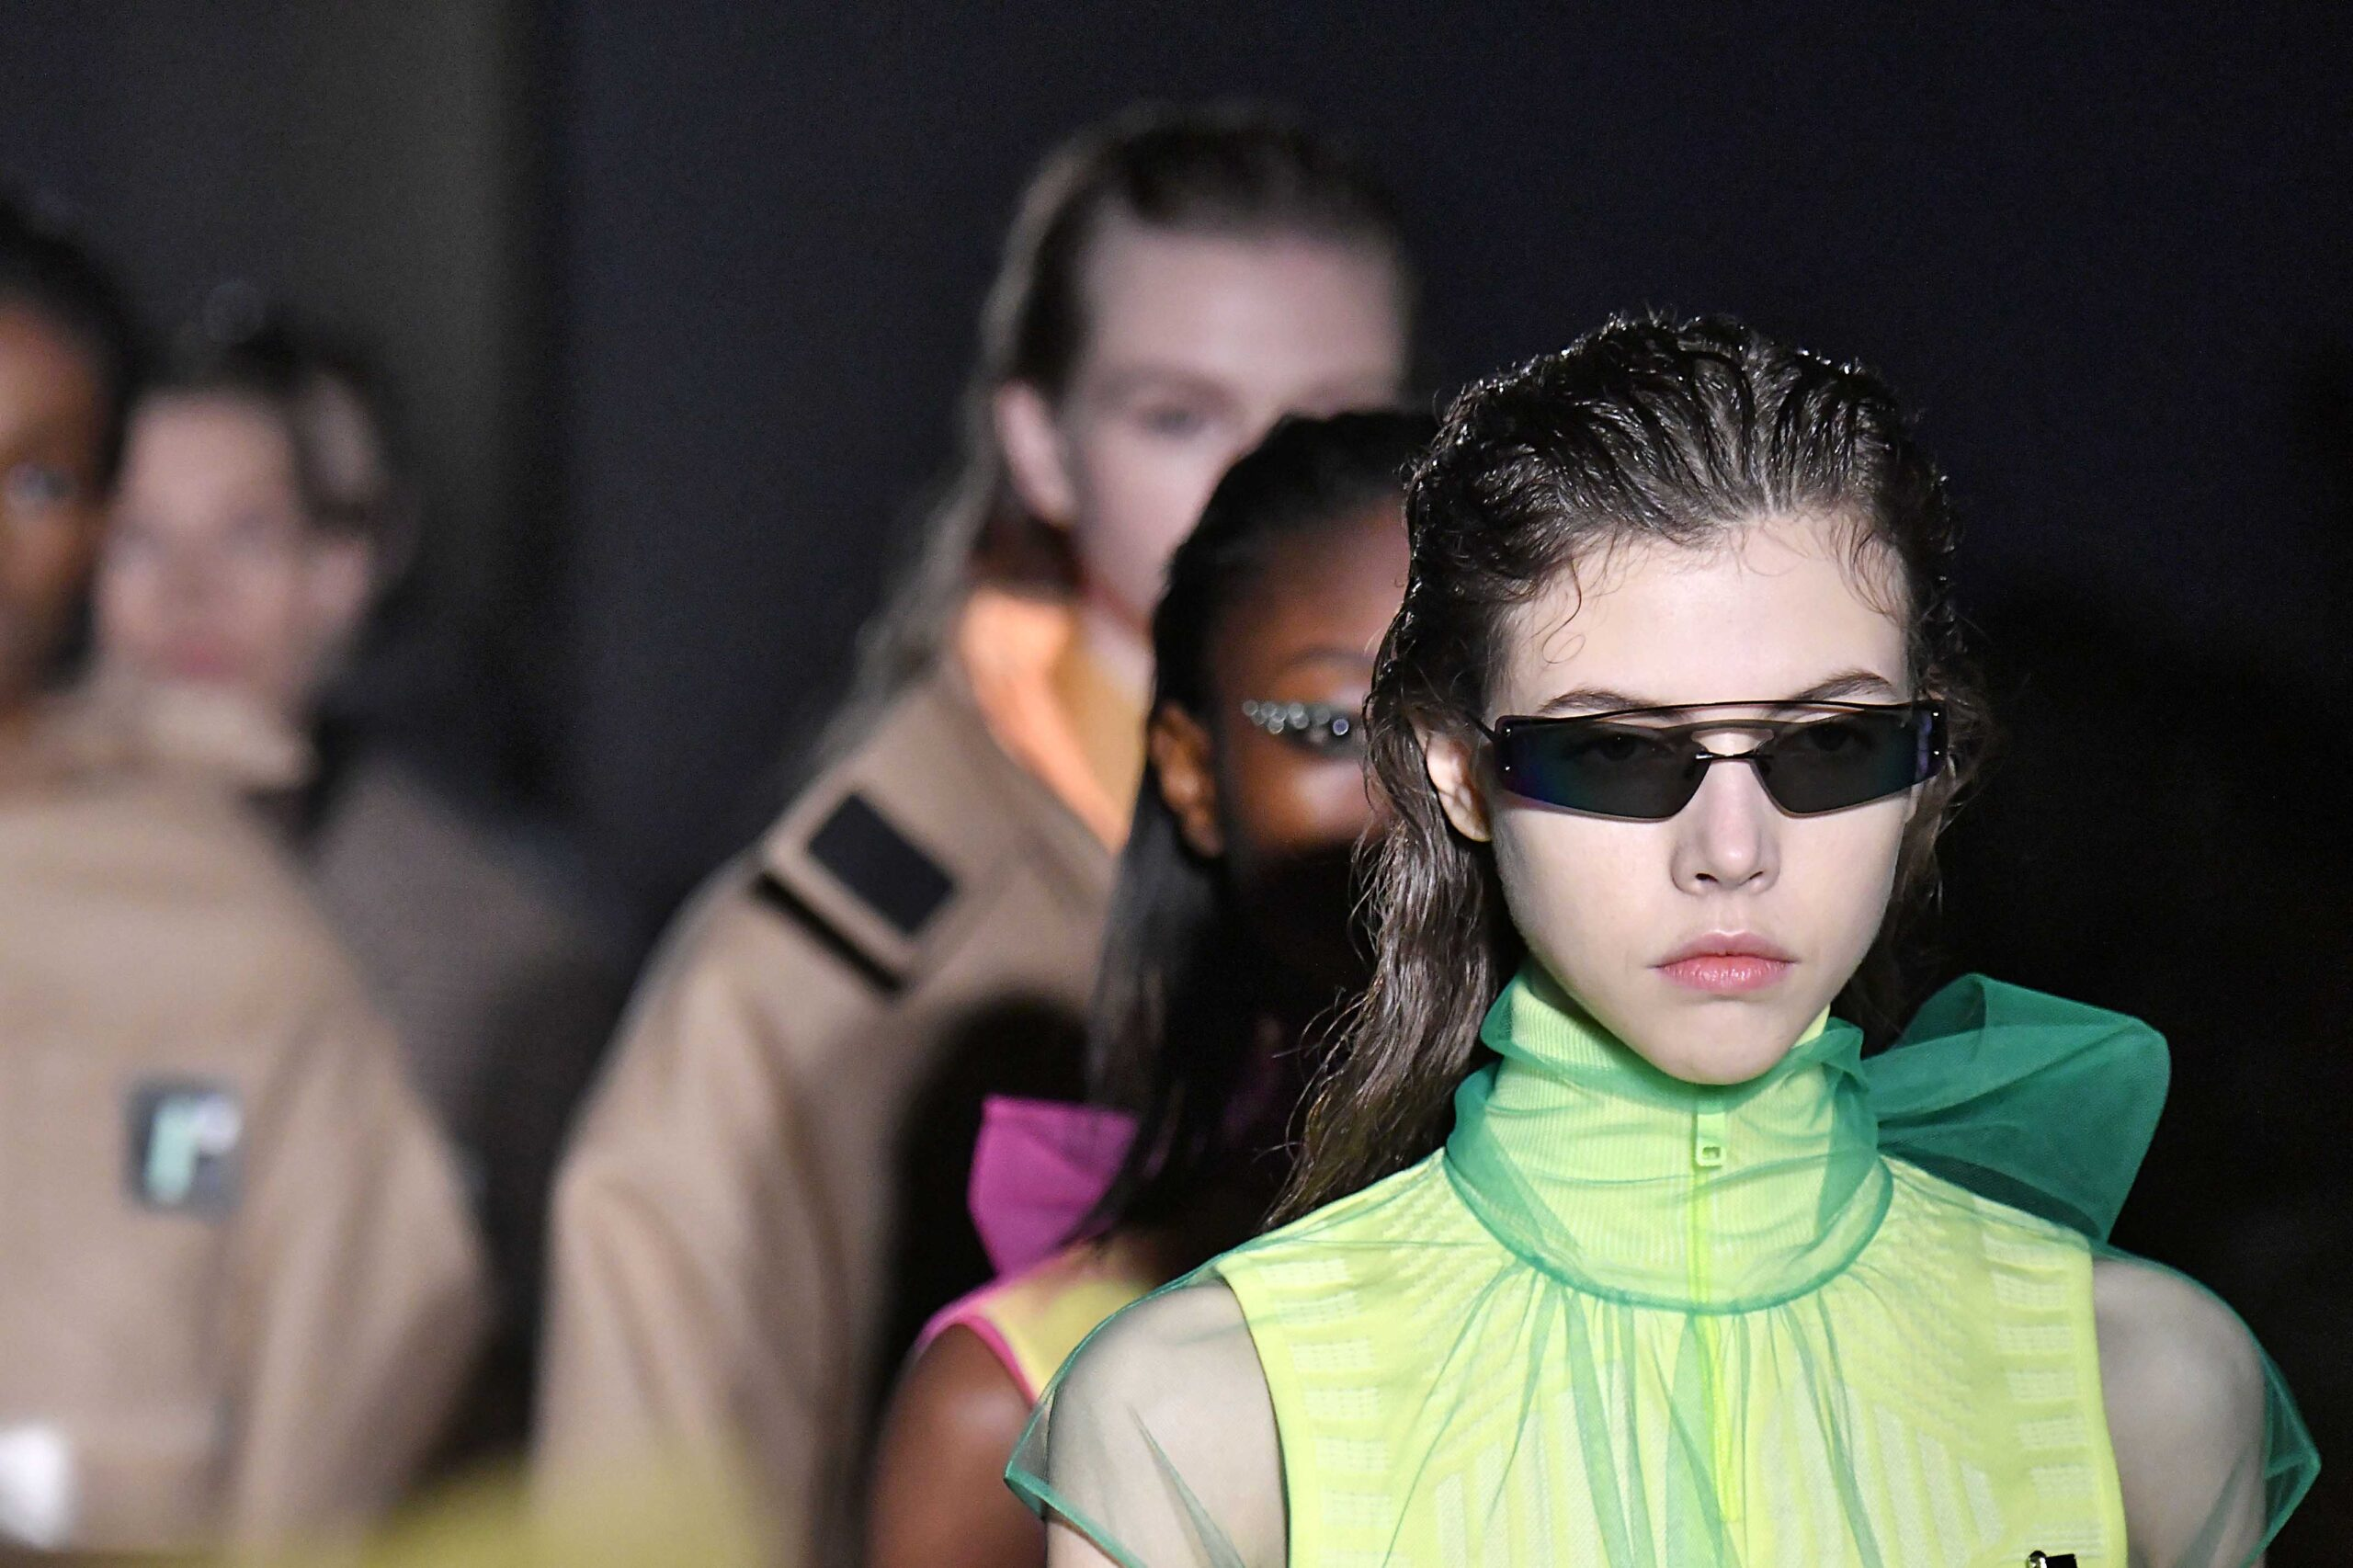 CRAVING COMMUNITY AND NEON, FASHION DESIGNERS LOOK TO RAVE